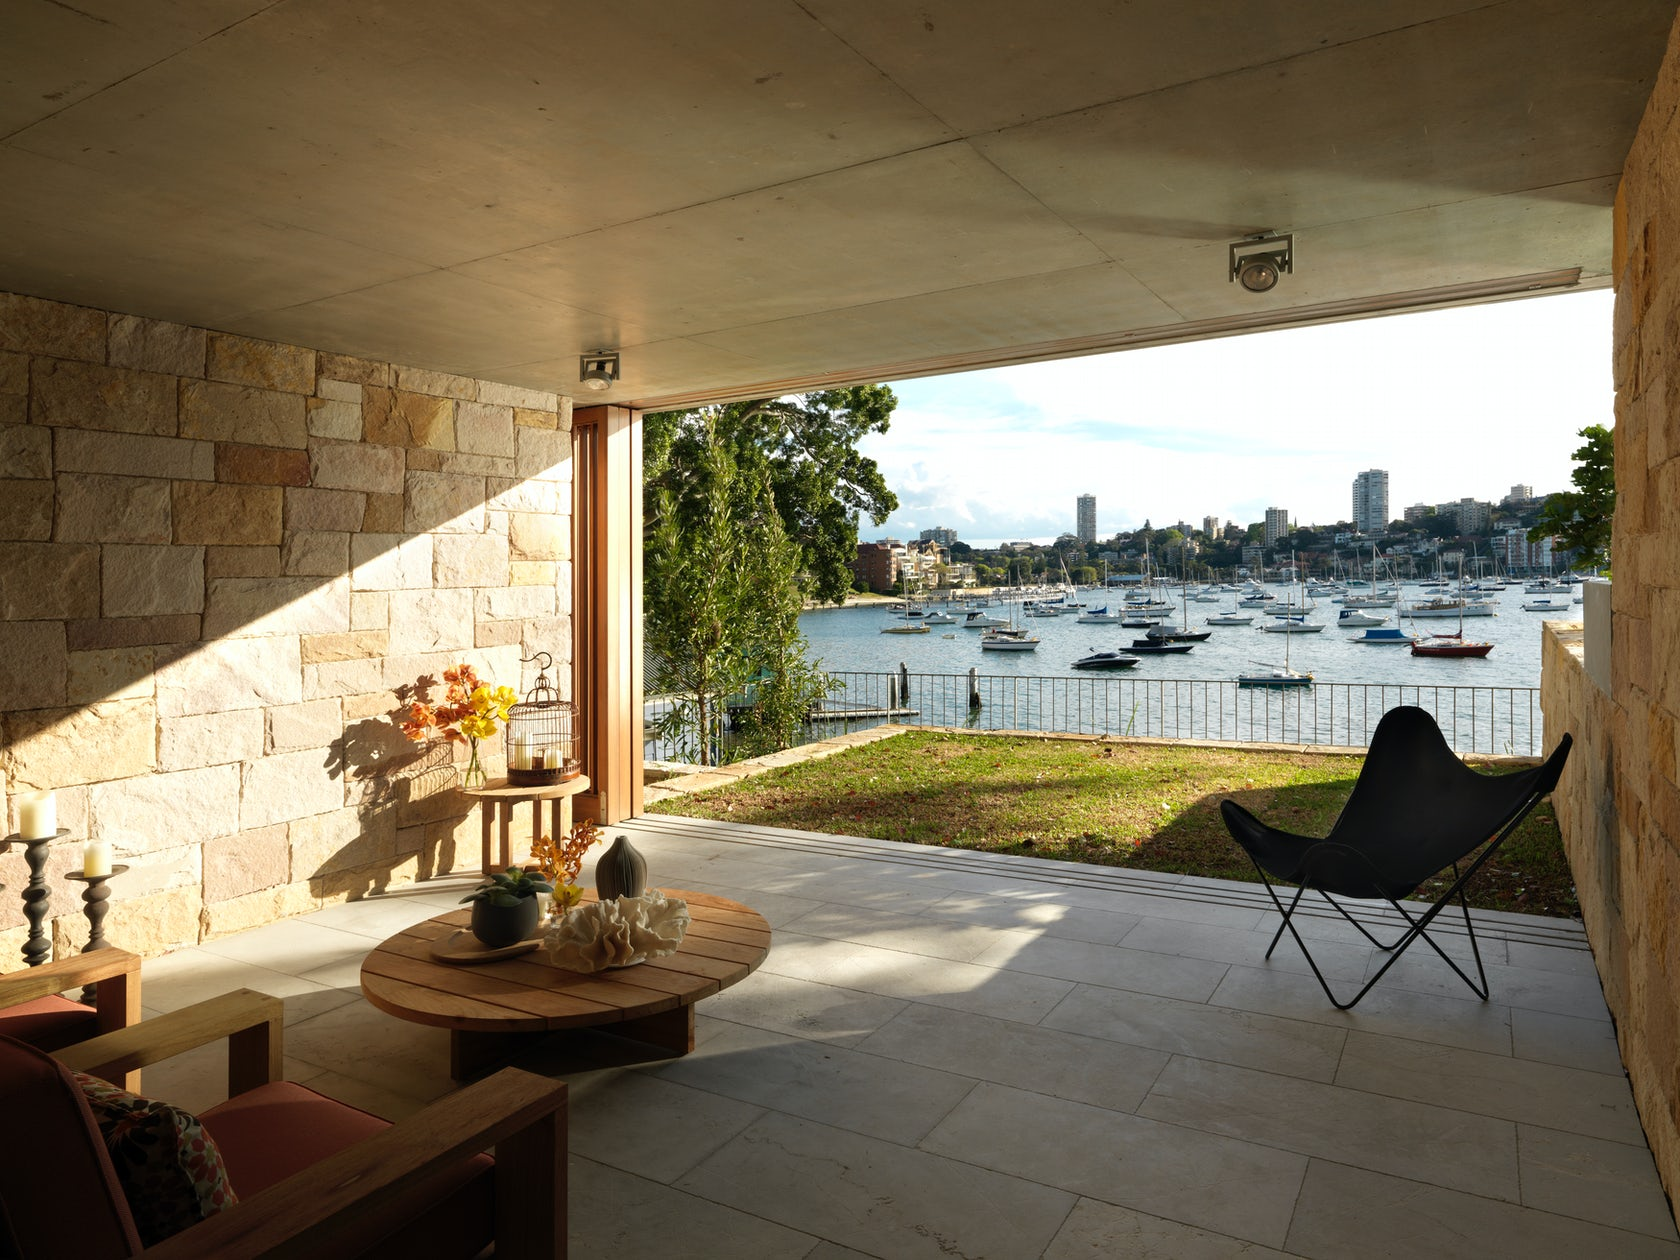 Harbourside Apartments & Boathouse - Architizer